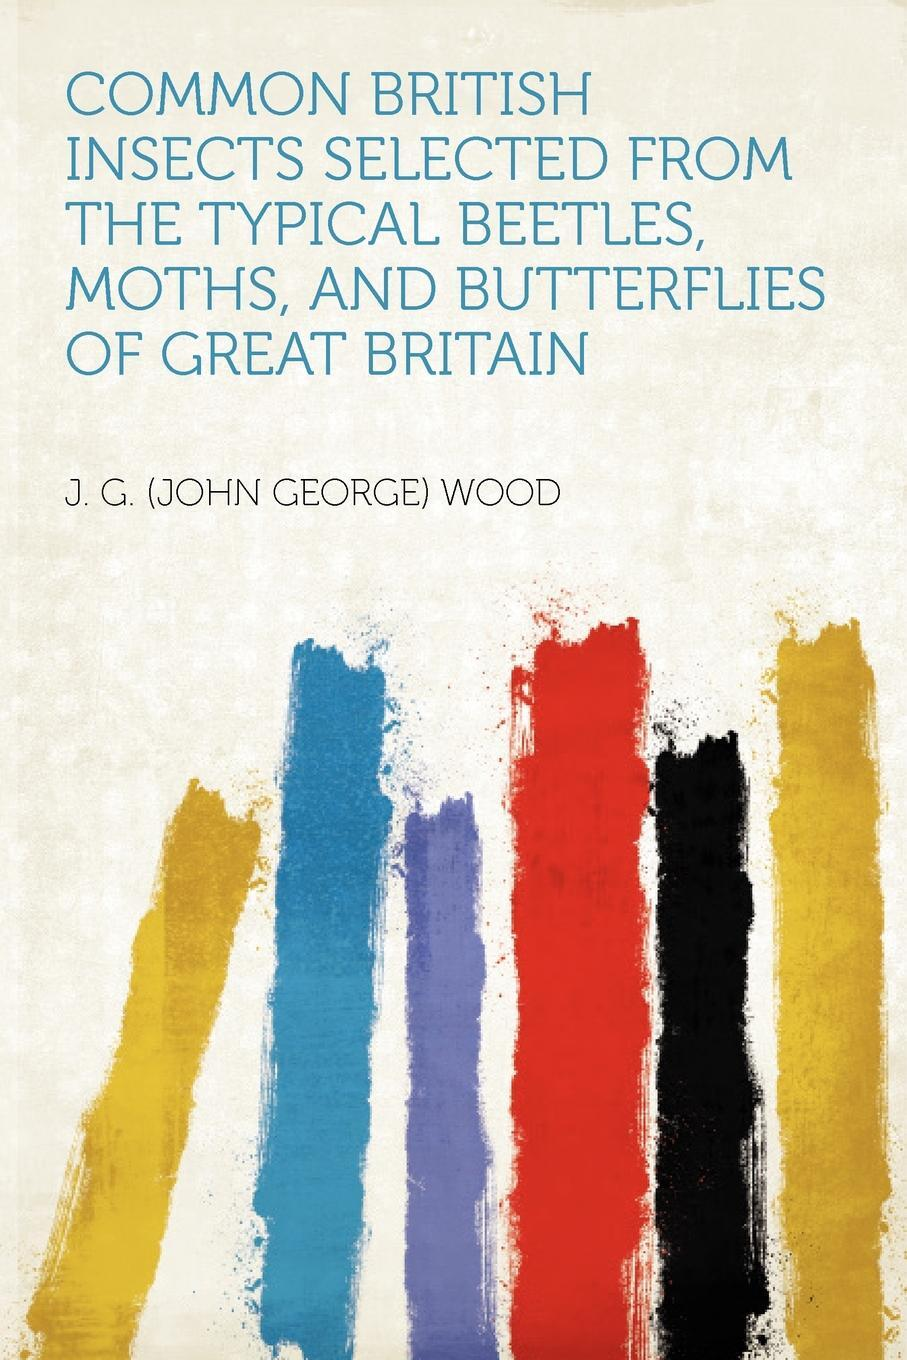 Common British Insects Selected From the Typical Beetles, Moths, and Butterflies of Great Britain. J. G. (John George) Wood